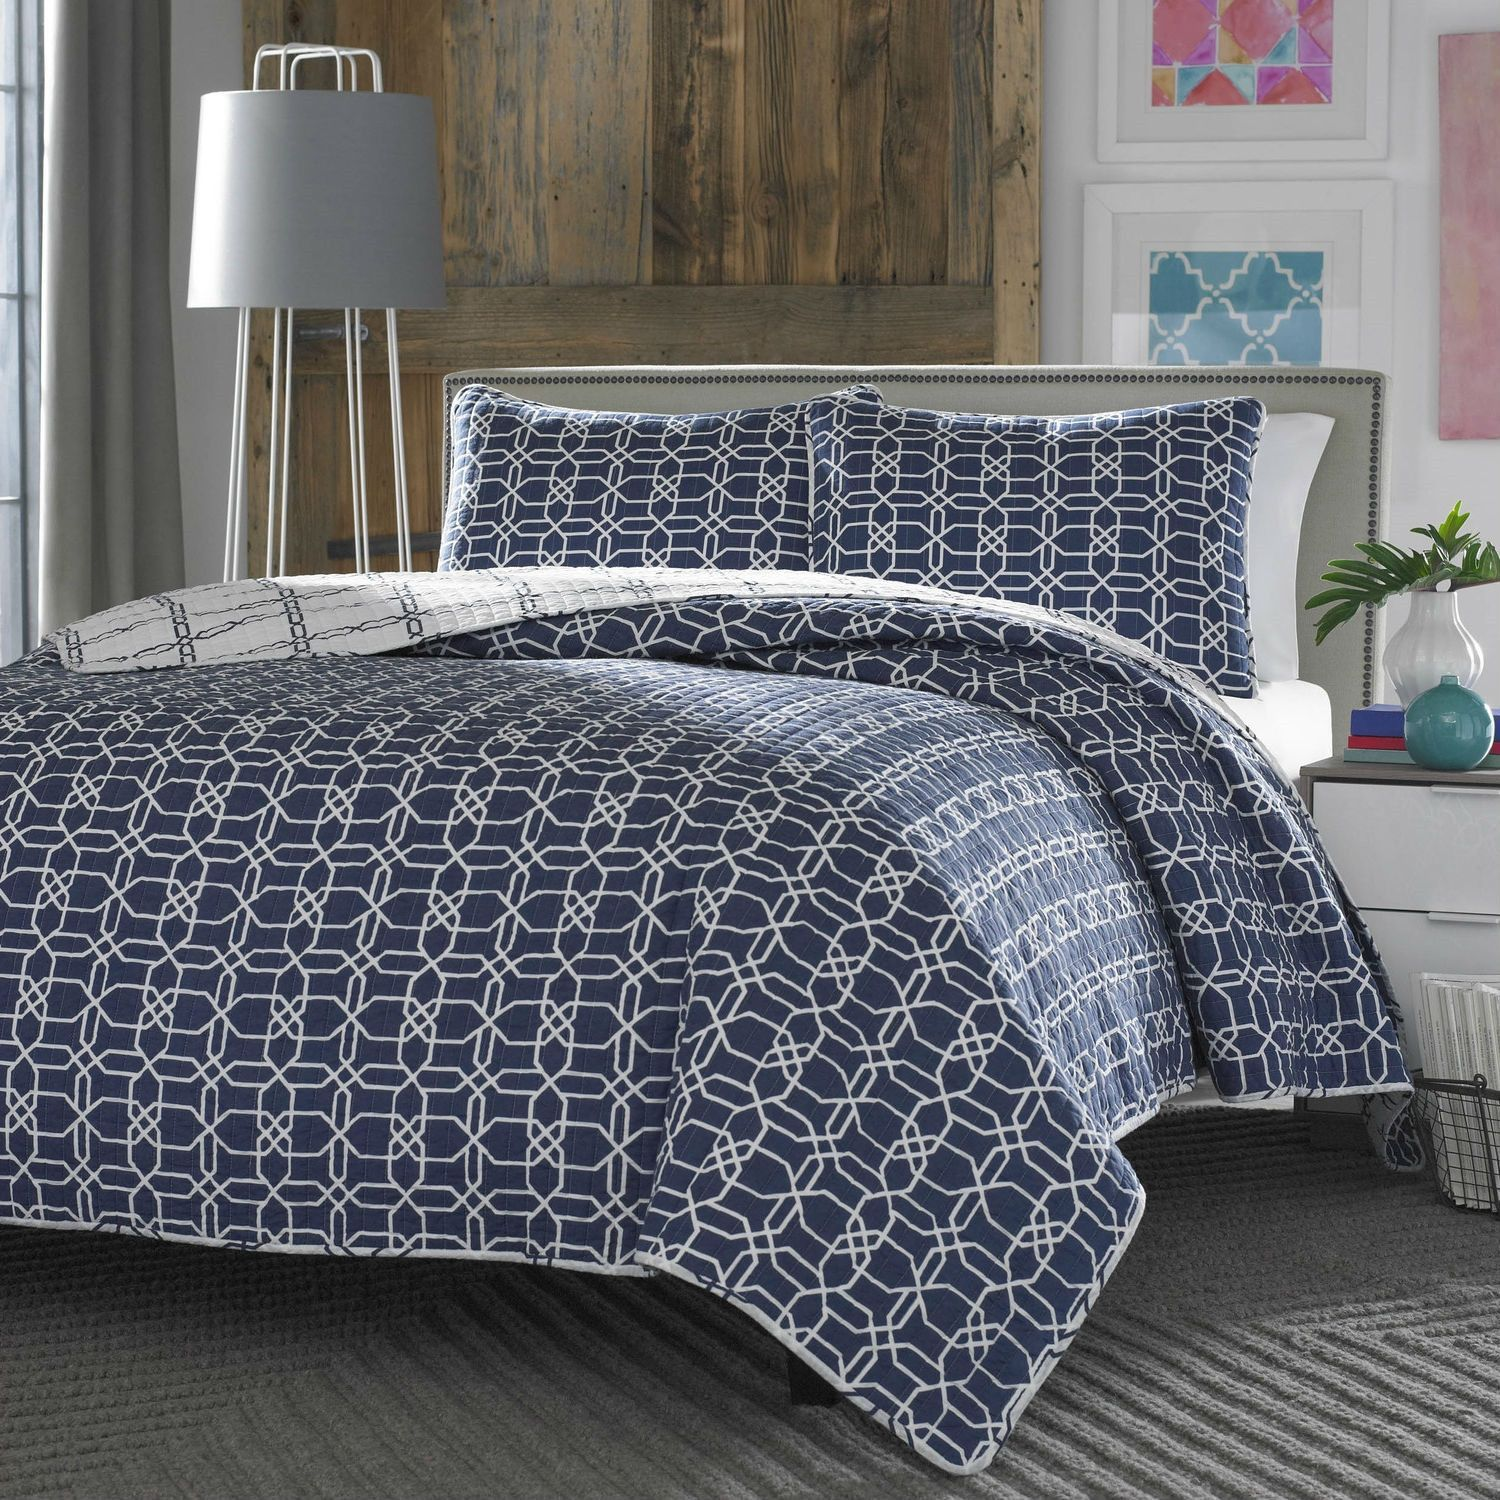 King Navy White Geometric Reversible Quilt Coverlet Bedspread Set White Coverlet White And Navy Bedding Bedspread Set